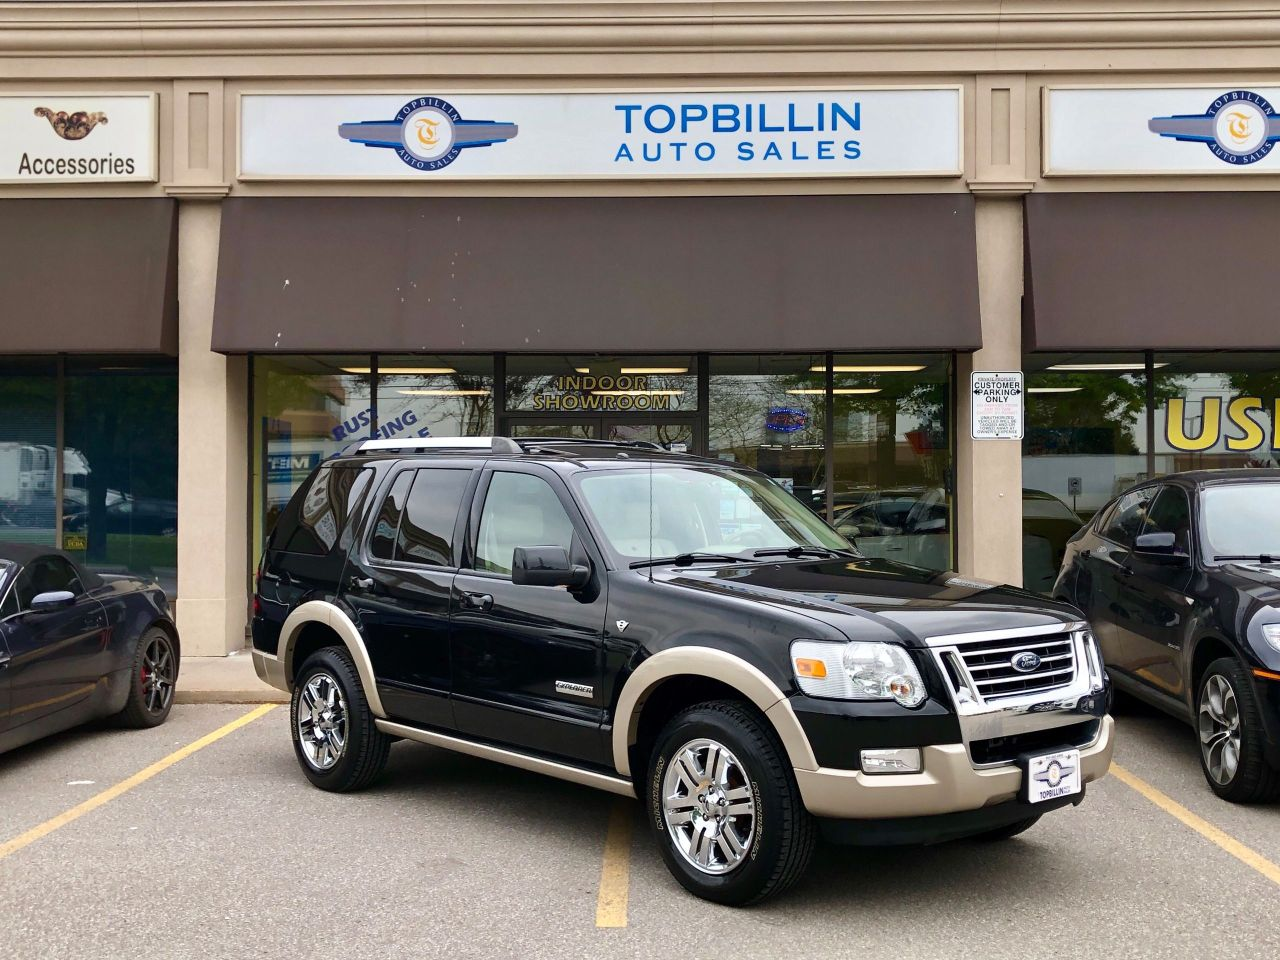 2007 Ford Explorer Eddie Bauer, Extra Clean, Leather Roof